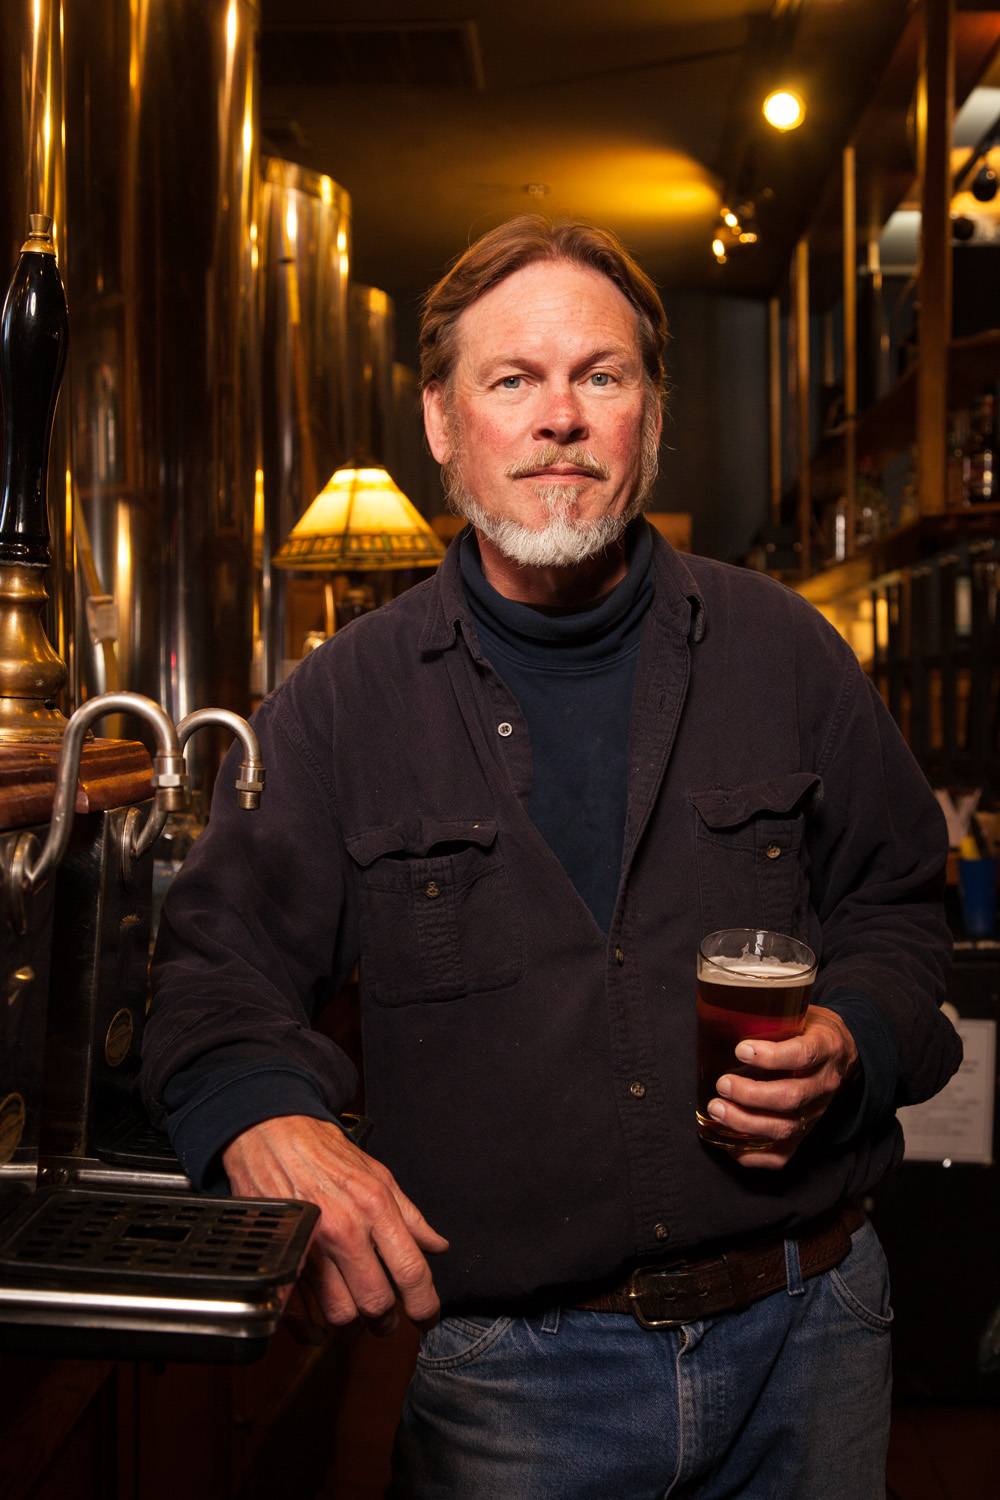 Tony Lubold, Brewmaster at Seven Barrel Brewery West Lebanon, NH Established in 1994